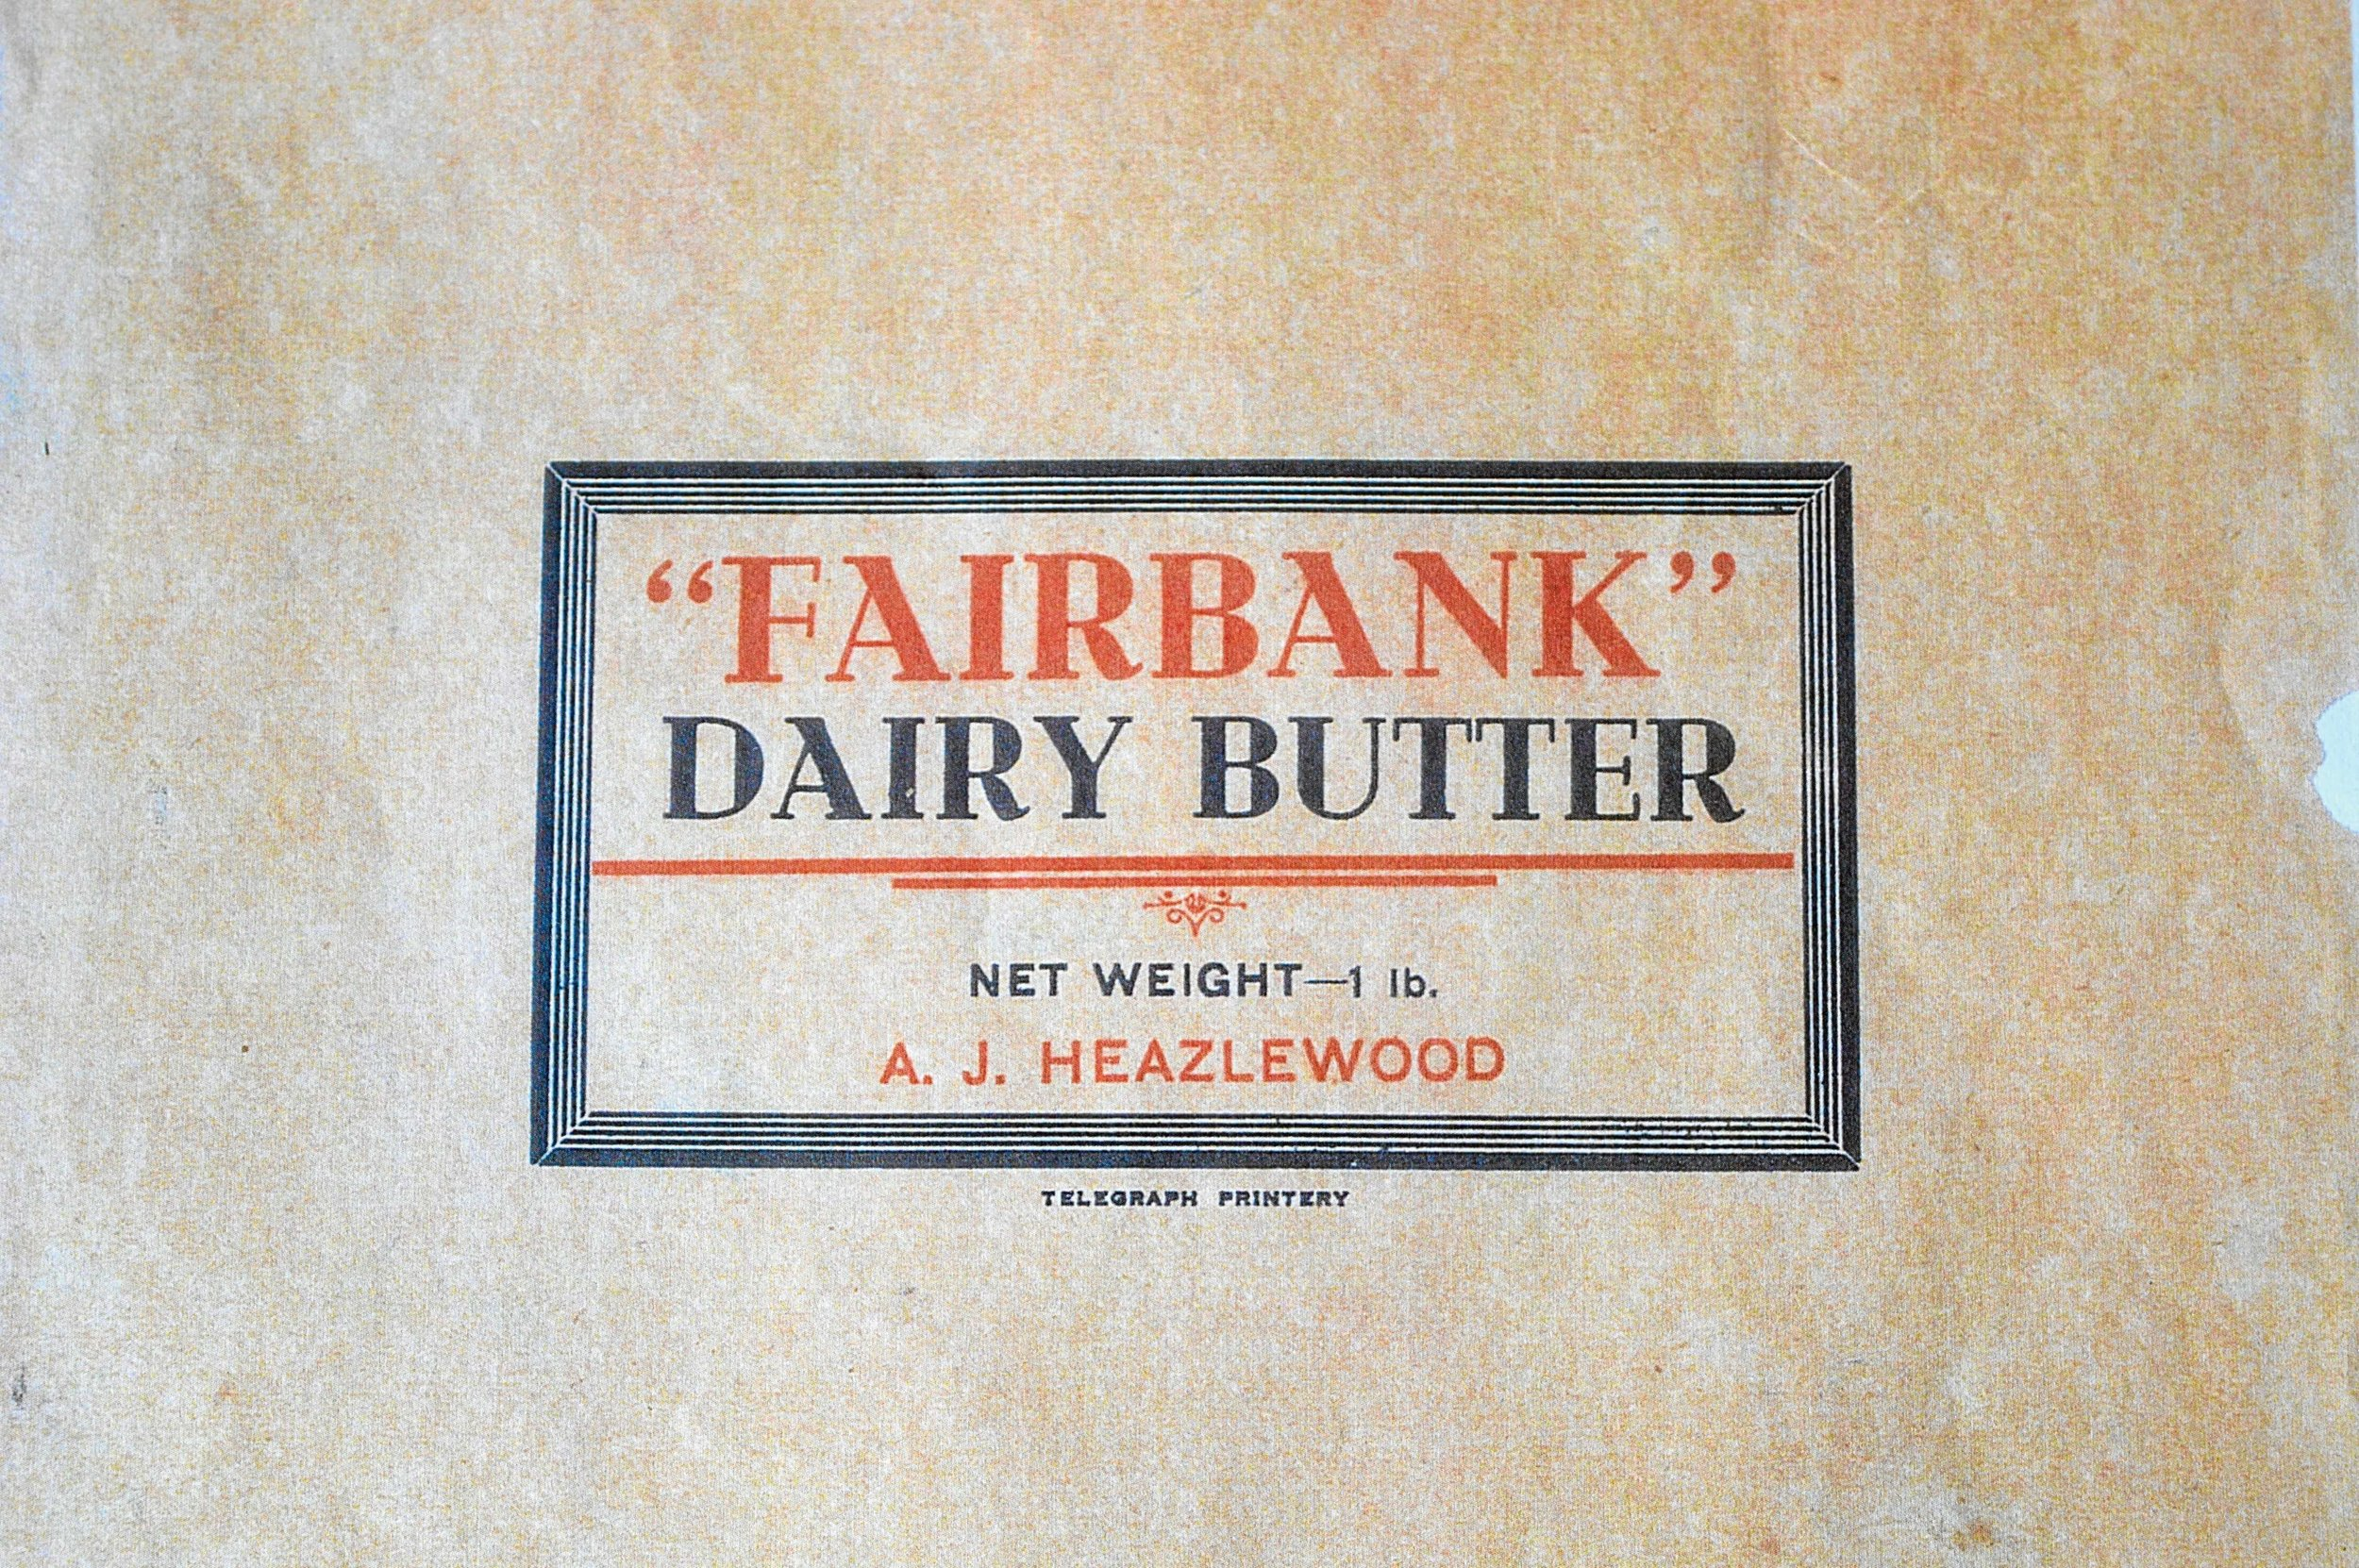 • The Heazlewoods made butter referred to as 'Fairbank', which has become the Springfield property's namesake.